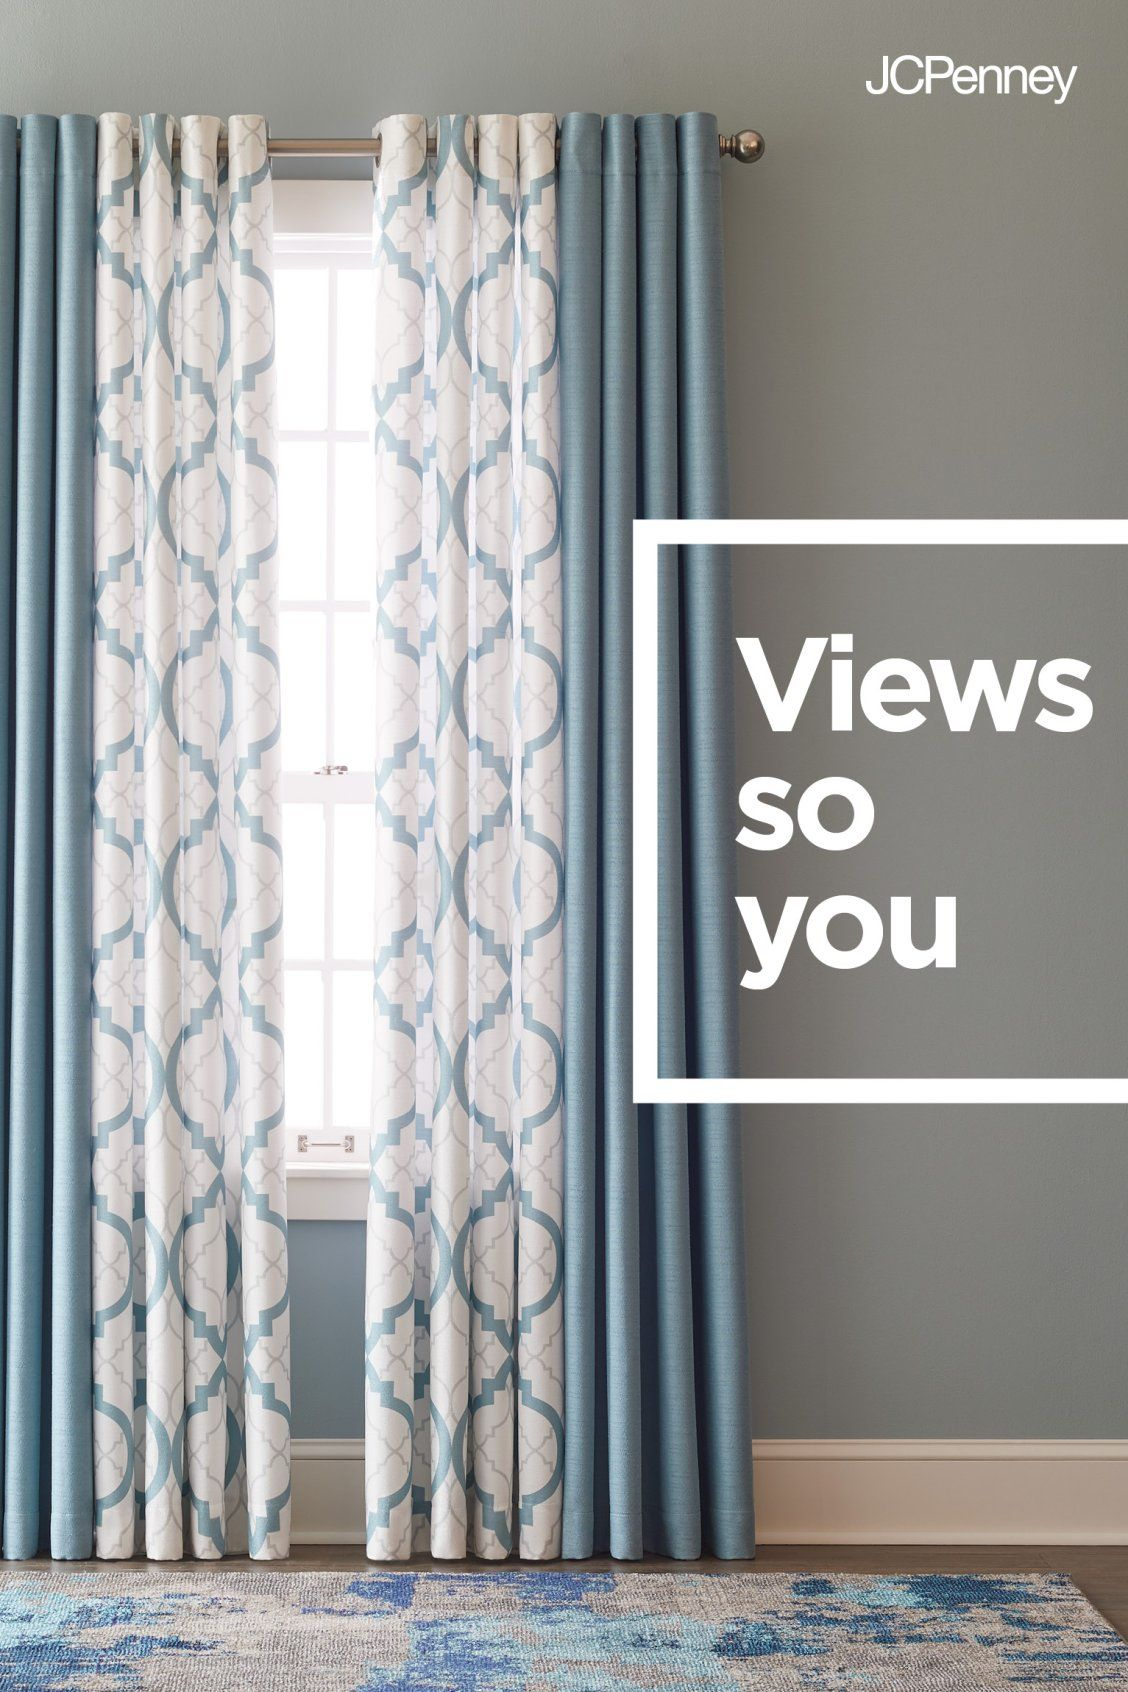 Jcpenney Is The Window Authority Refresh Your Windows With Ready